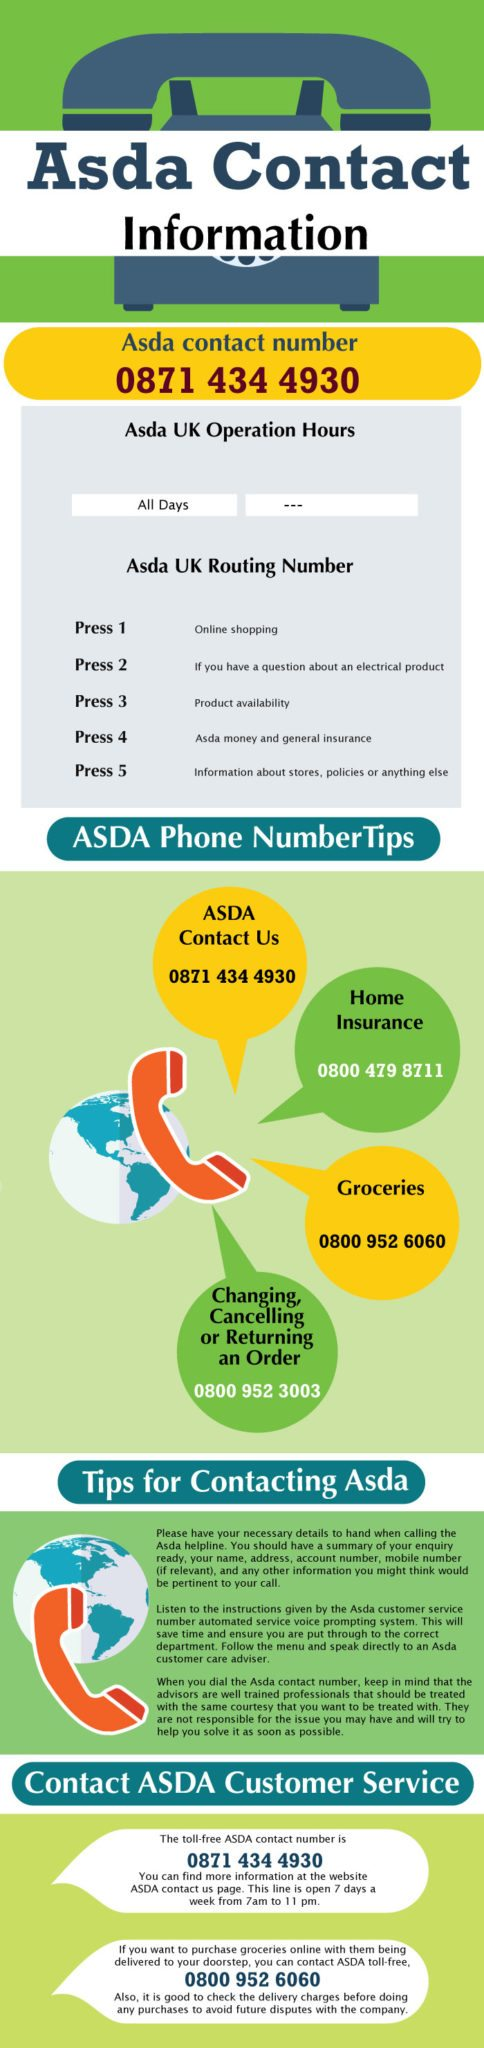 ASDA customer service phone number